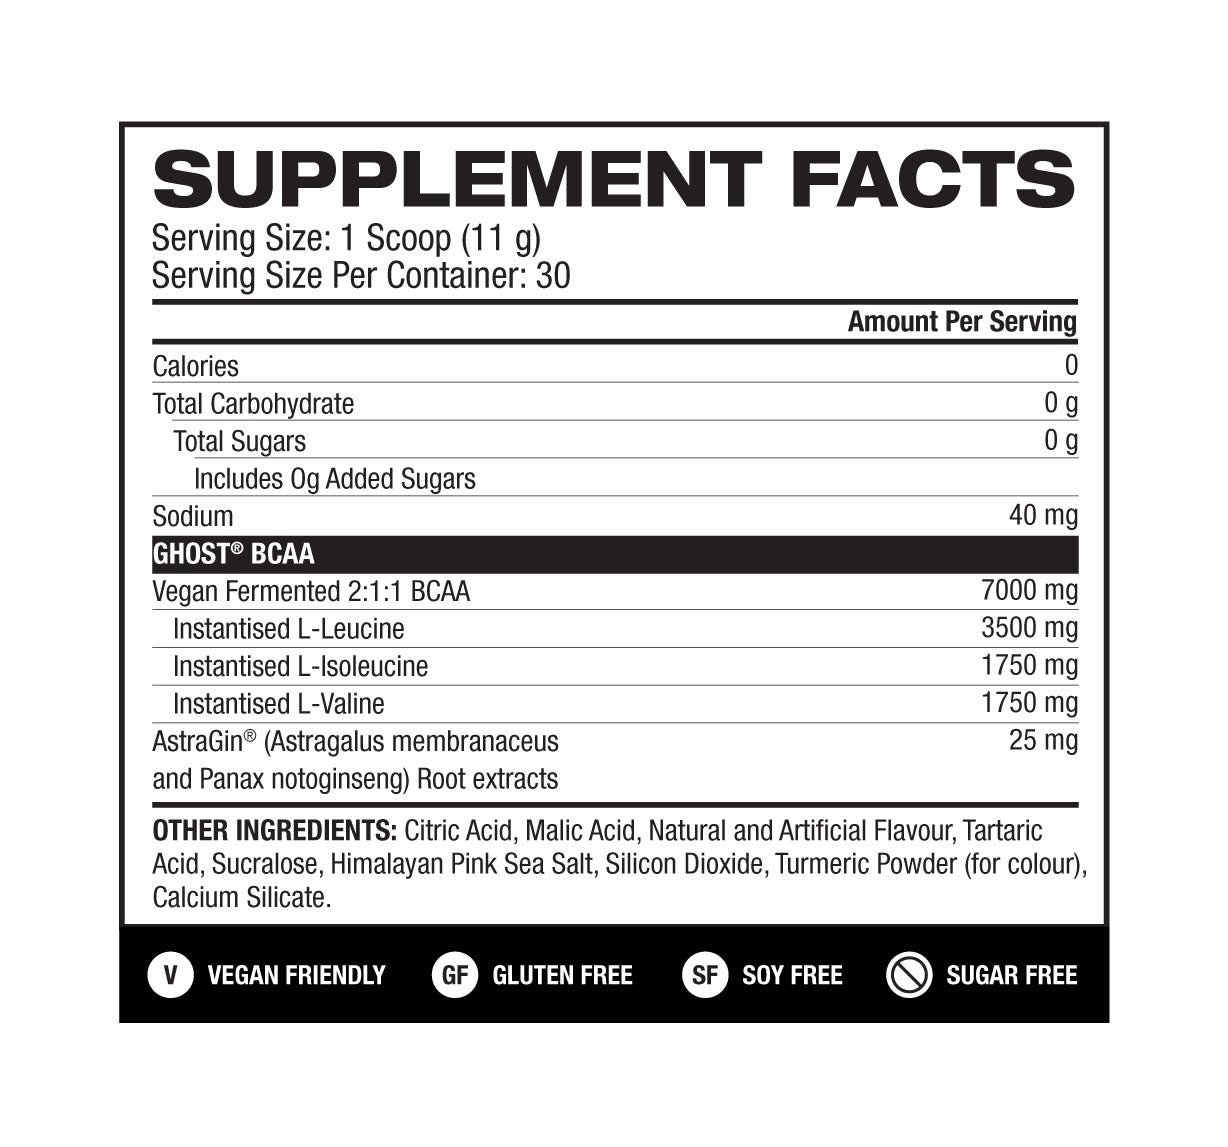 Nutrition Facts For Ghost Lifestyle BCAA V2